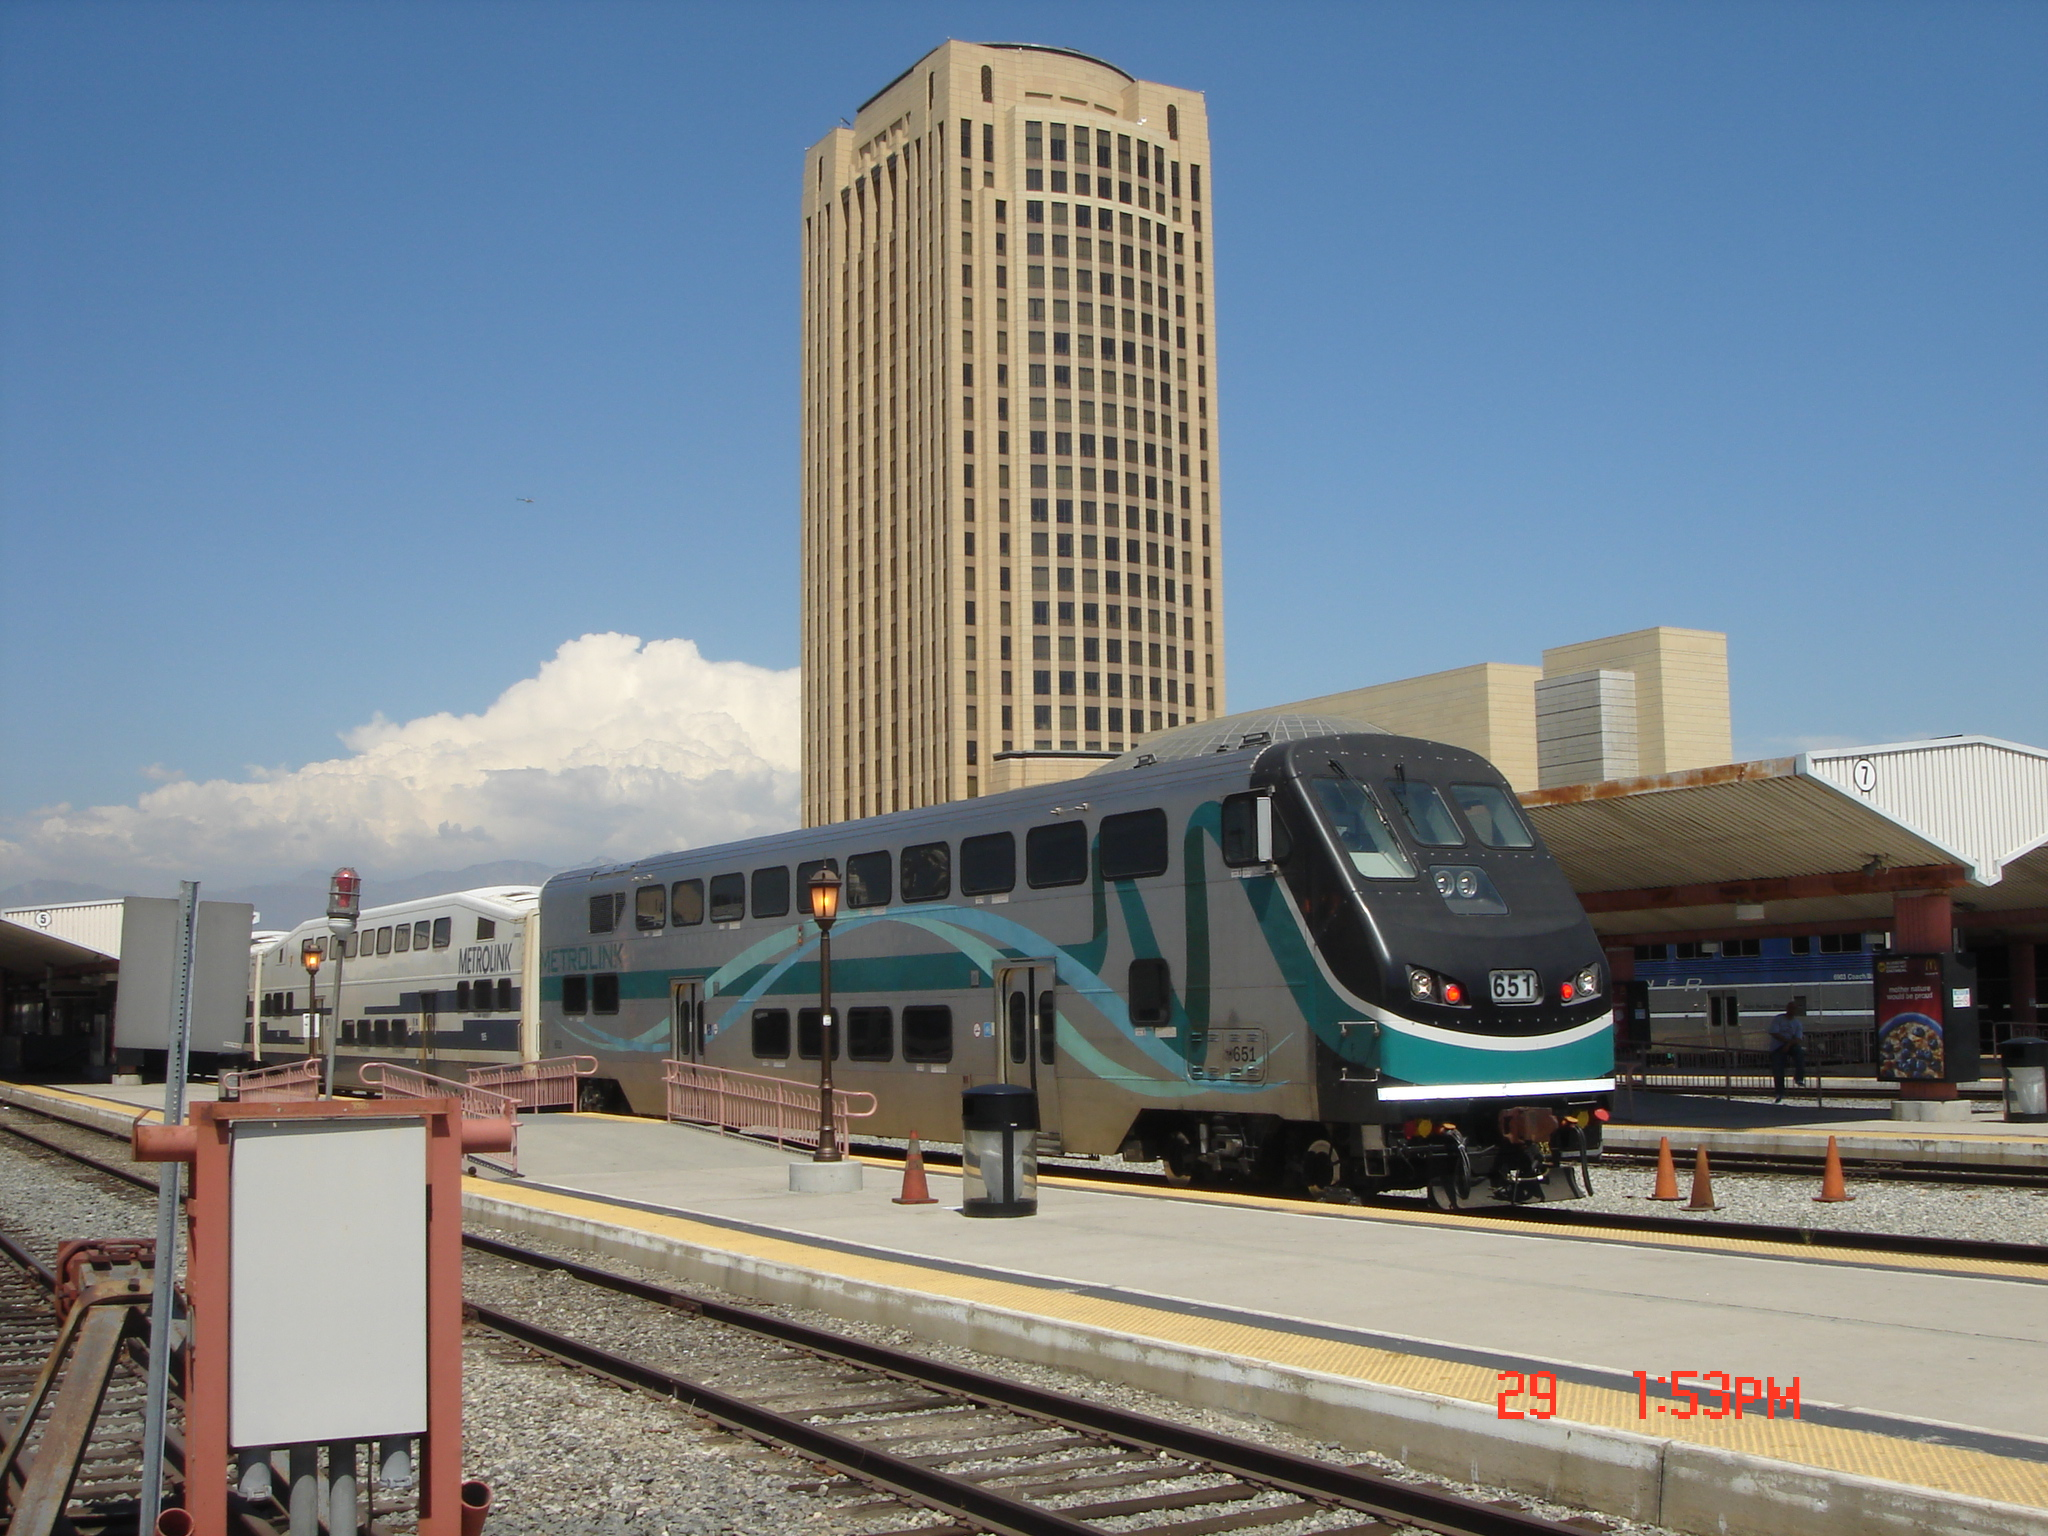 Tren de Metrolink en Union Station.